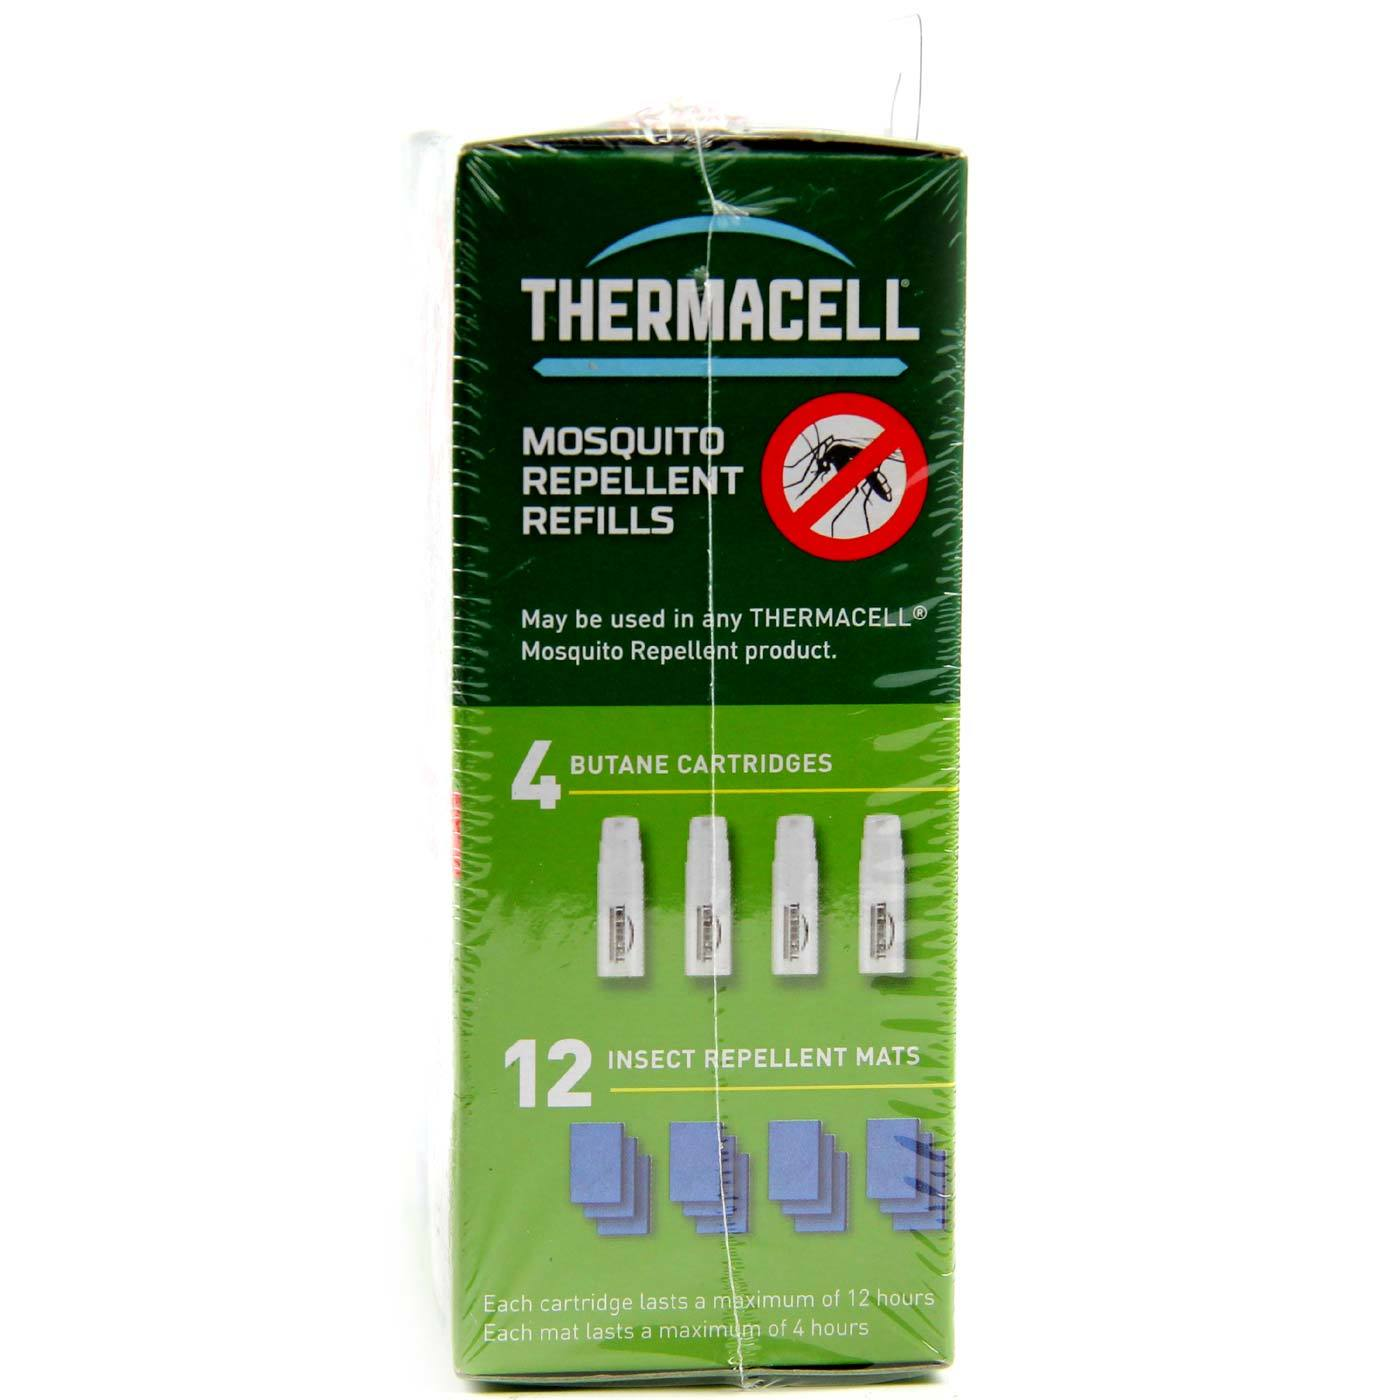 Thermacell Mosqutio Repellent Refills 4 Butane